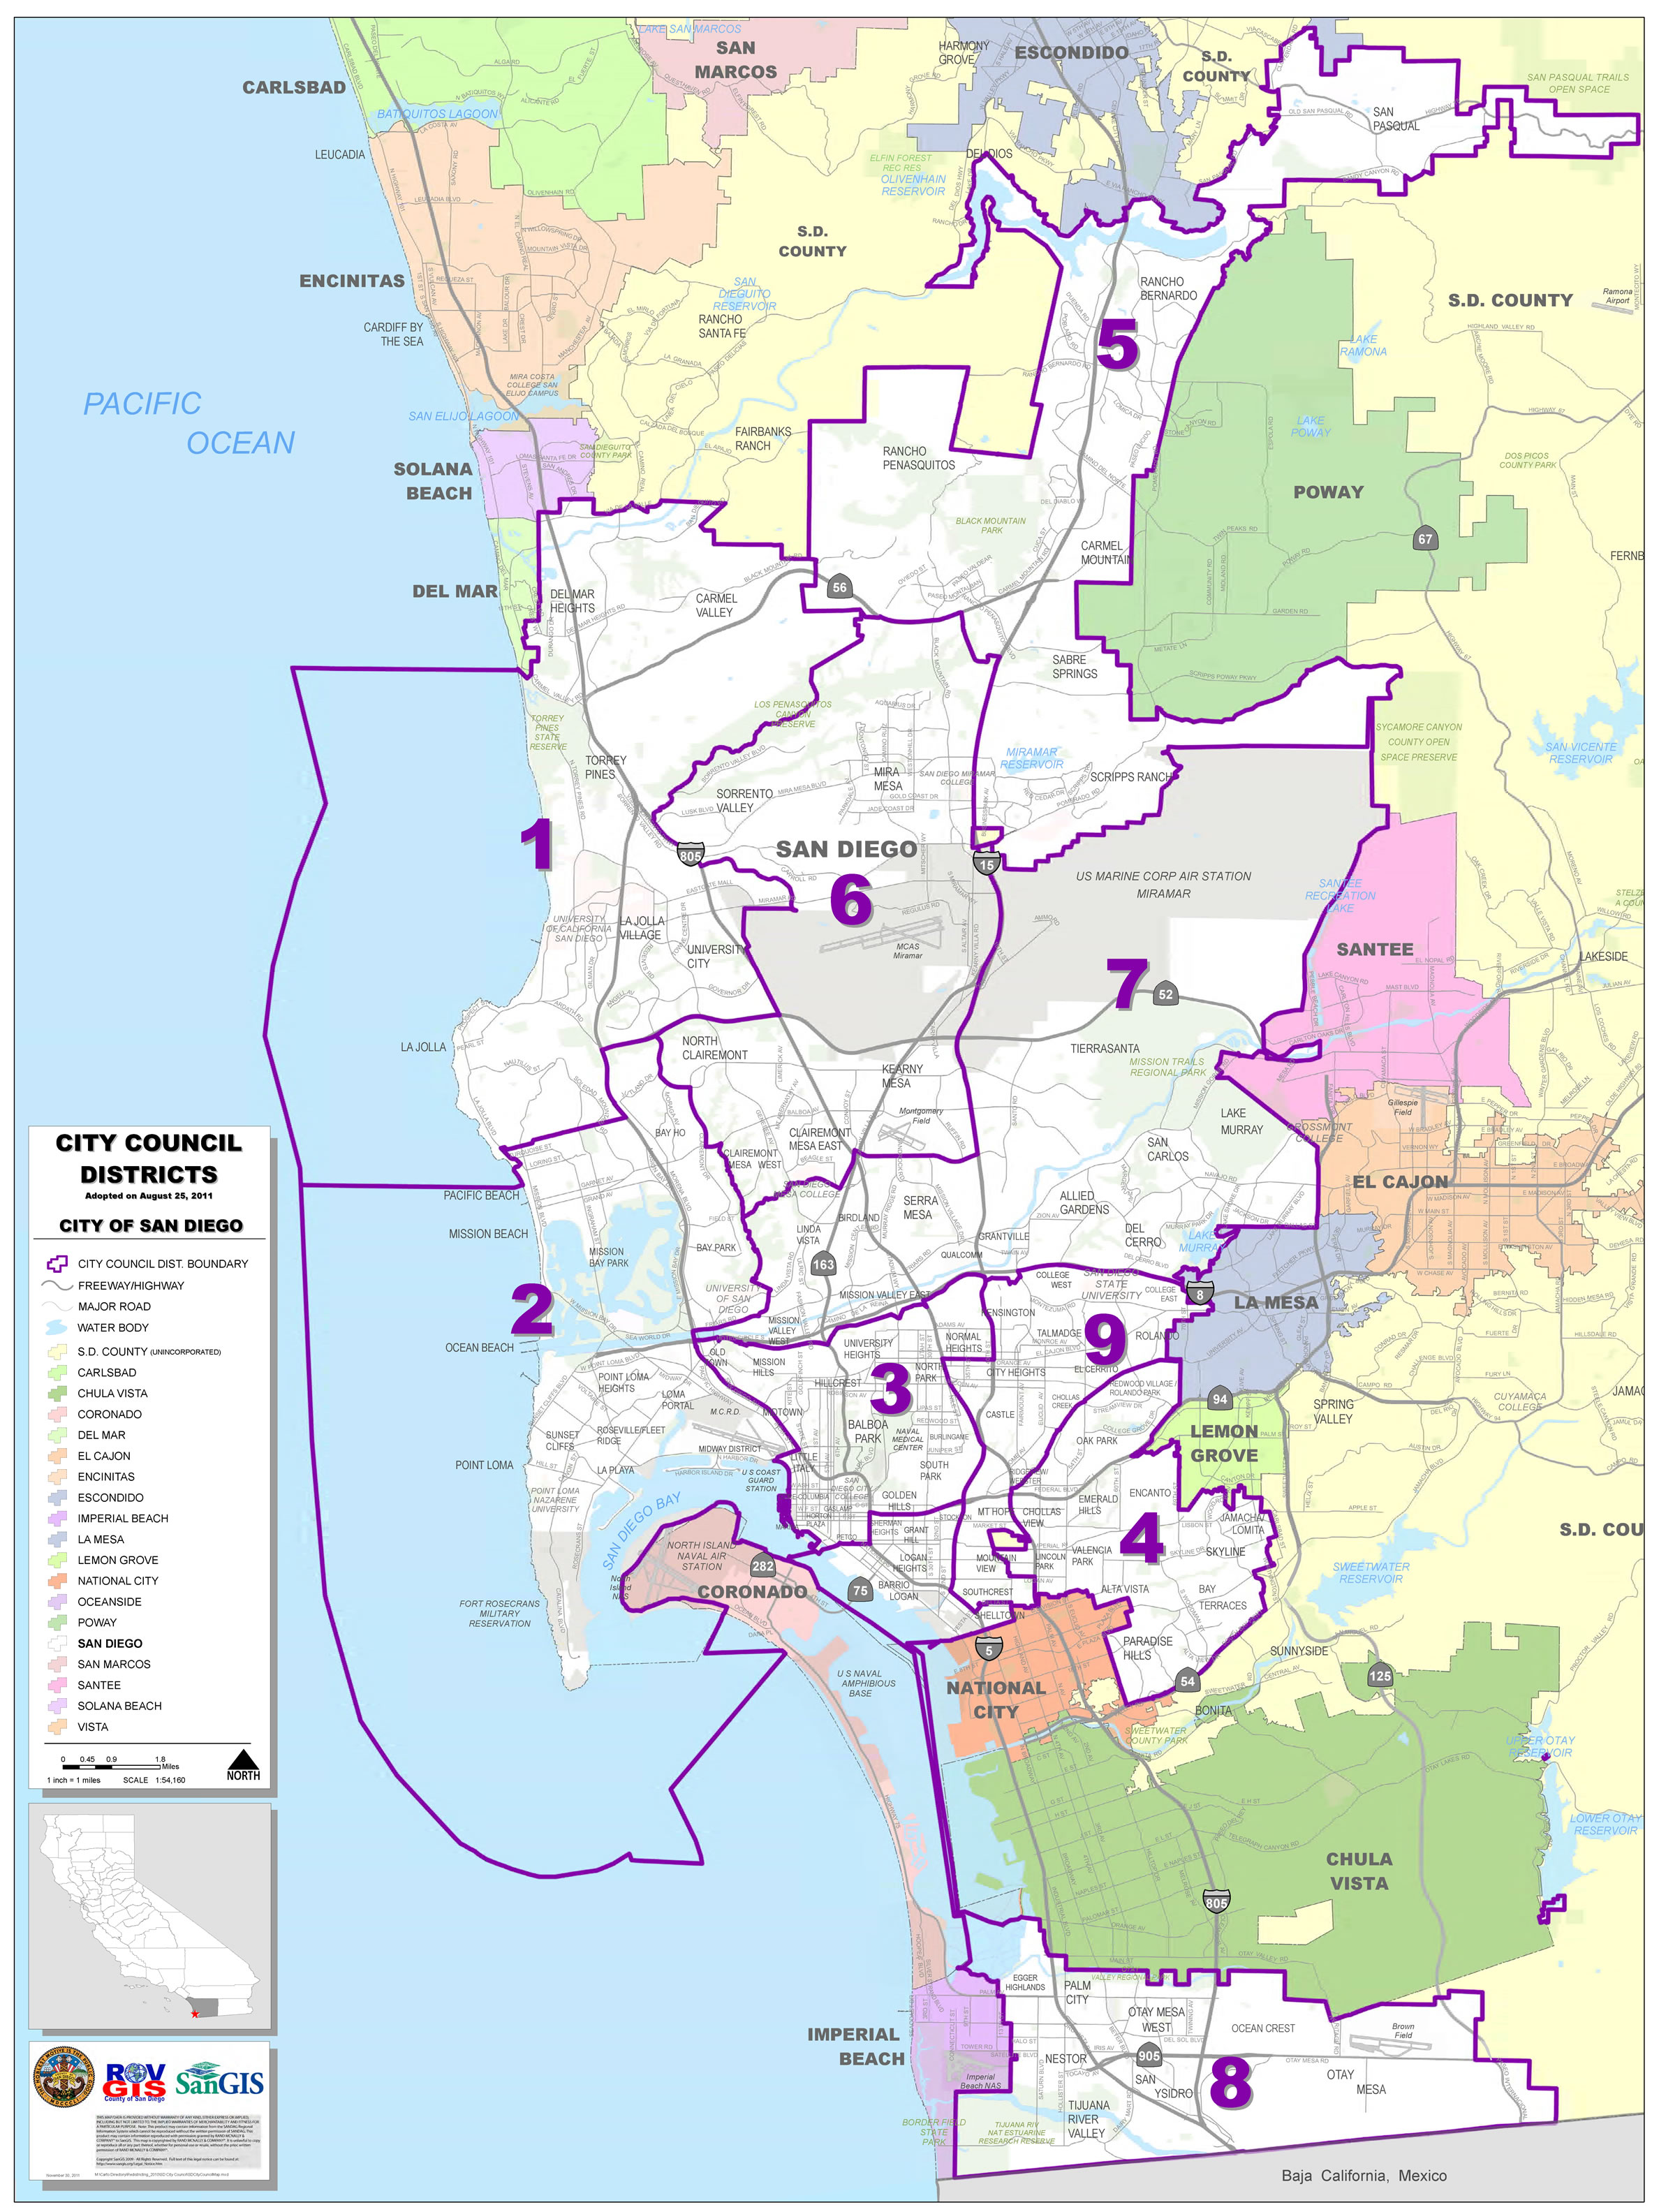 san diego city council districts